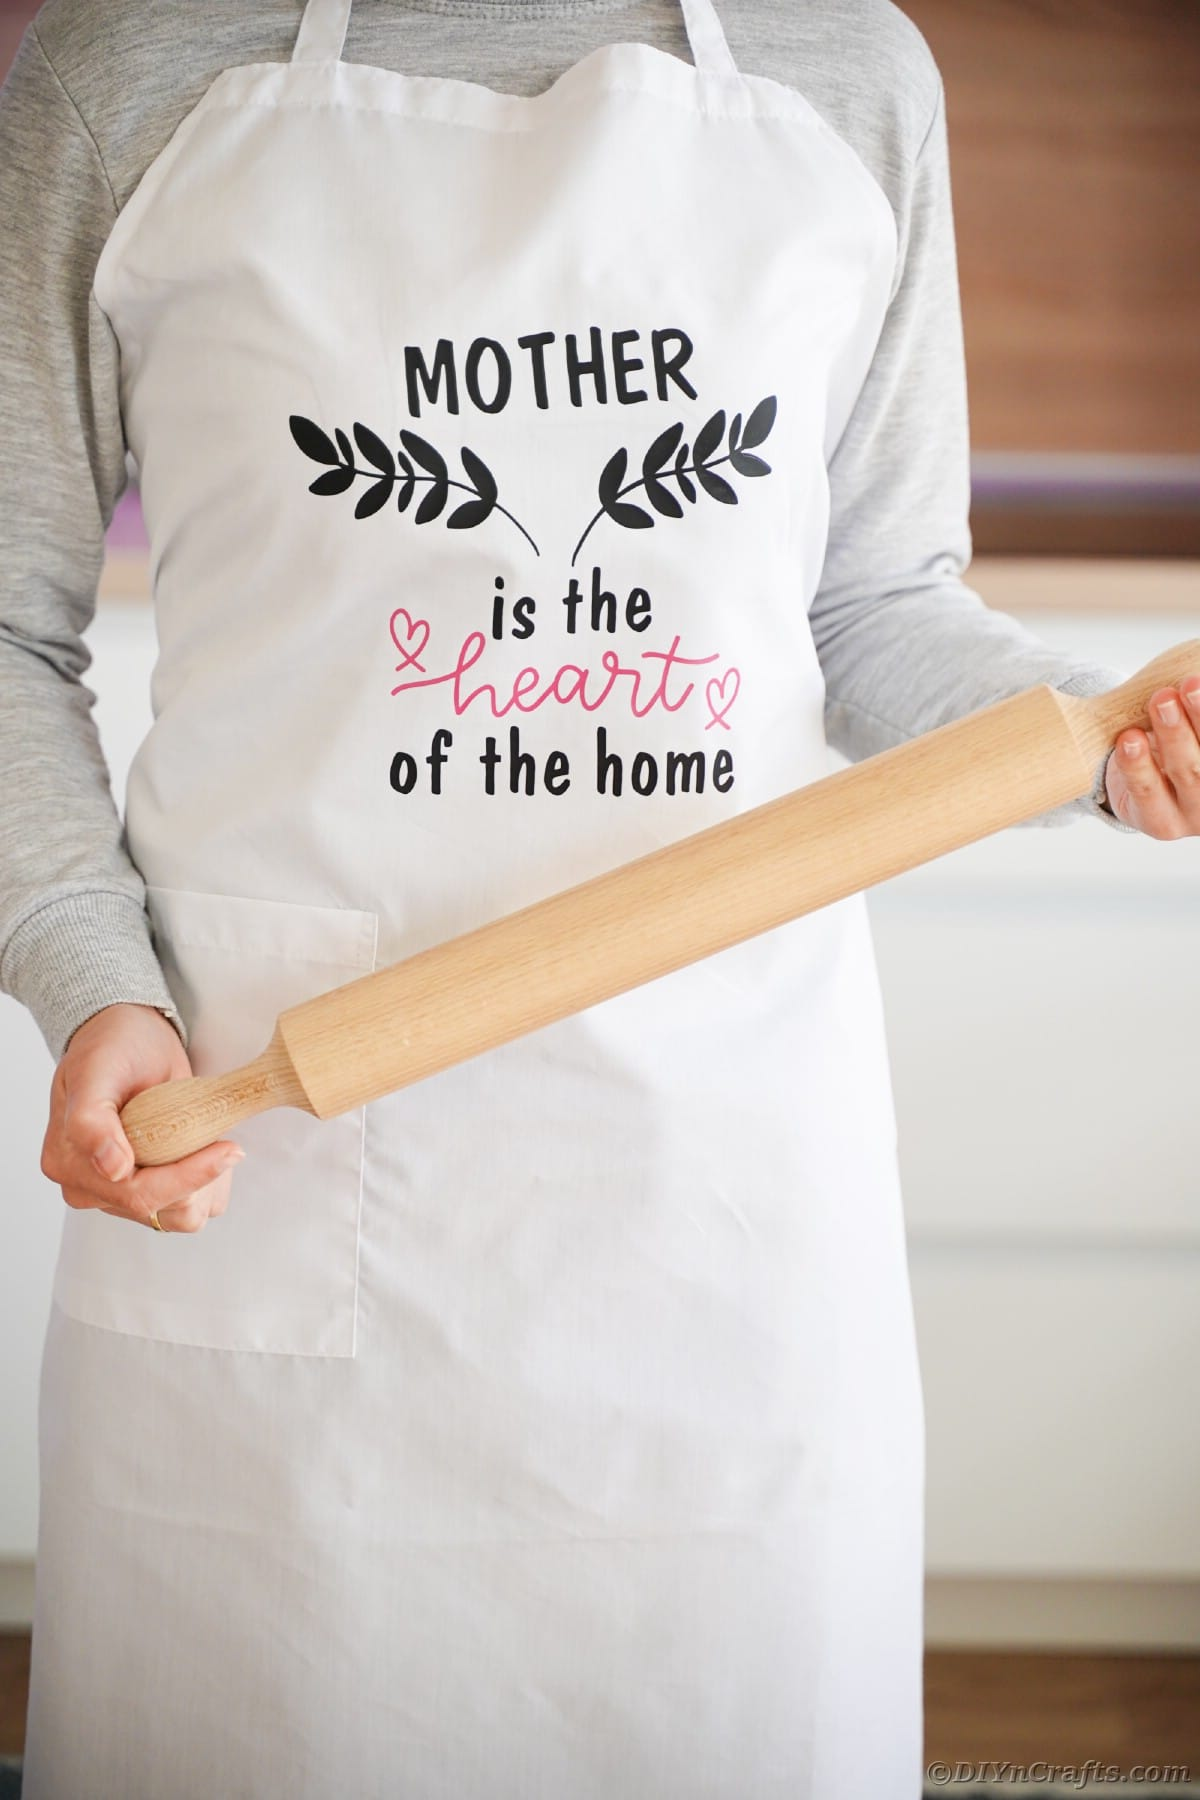 Woman with black vinyl message on front of apron holding rolling pin